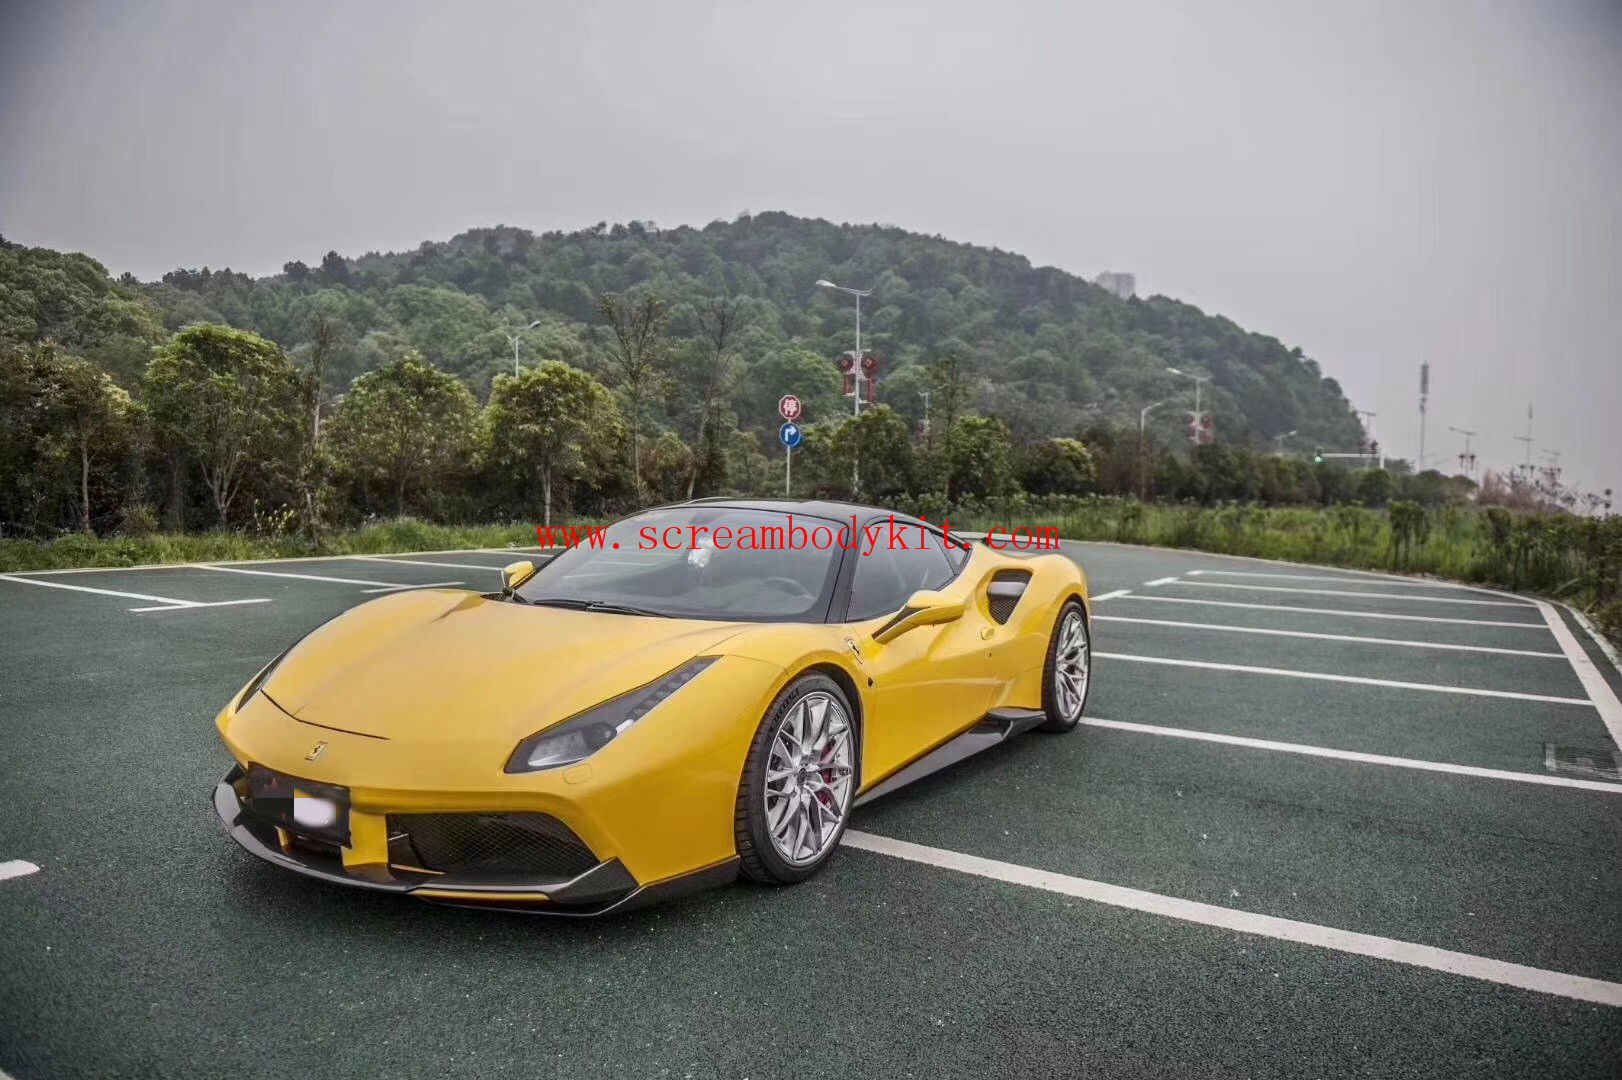 Ferrari 488 GTB body kit Novite front lip rear diffuser side skirt spoiler dry carbon fiber etc